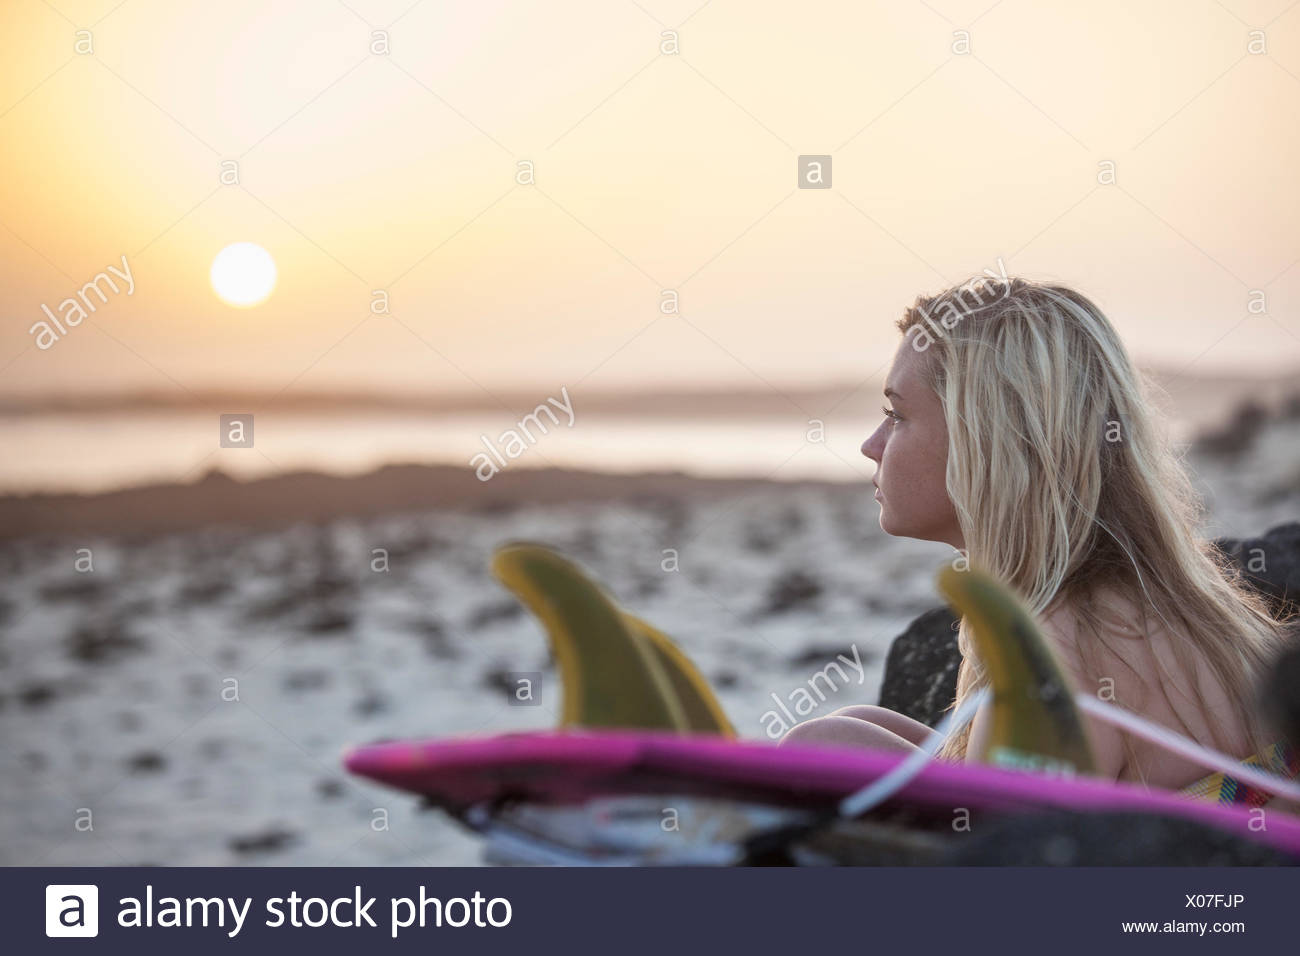 Blonde surfer girl sitting on the beach at sunset - Stock Image